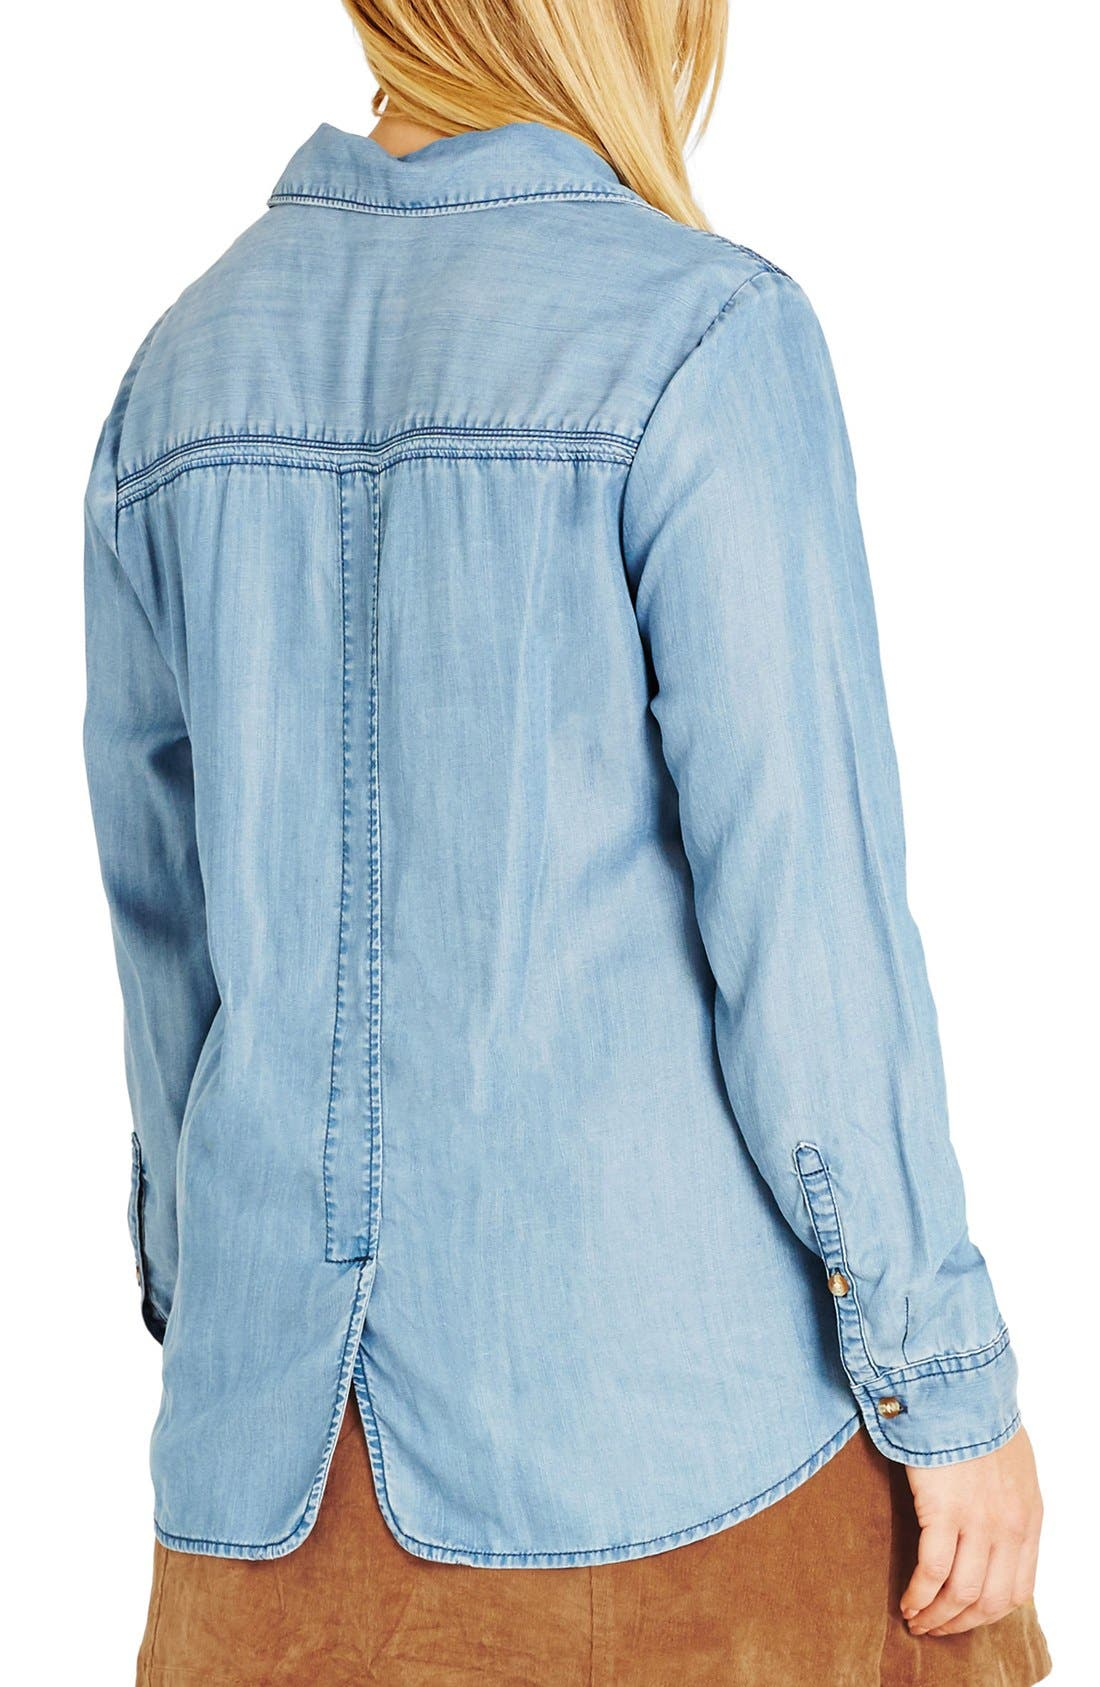 'Rodeo' Embroidered Denim Shirt,                             Alternate thumbnail 3, color,                             409